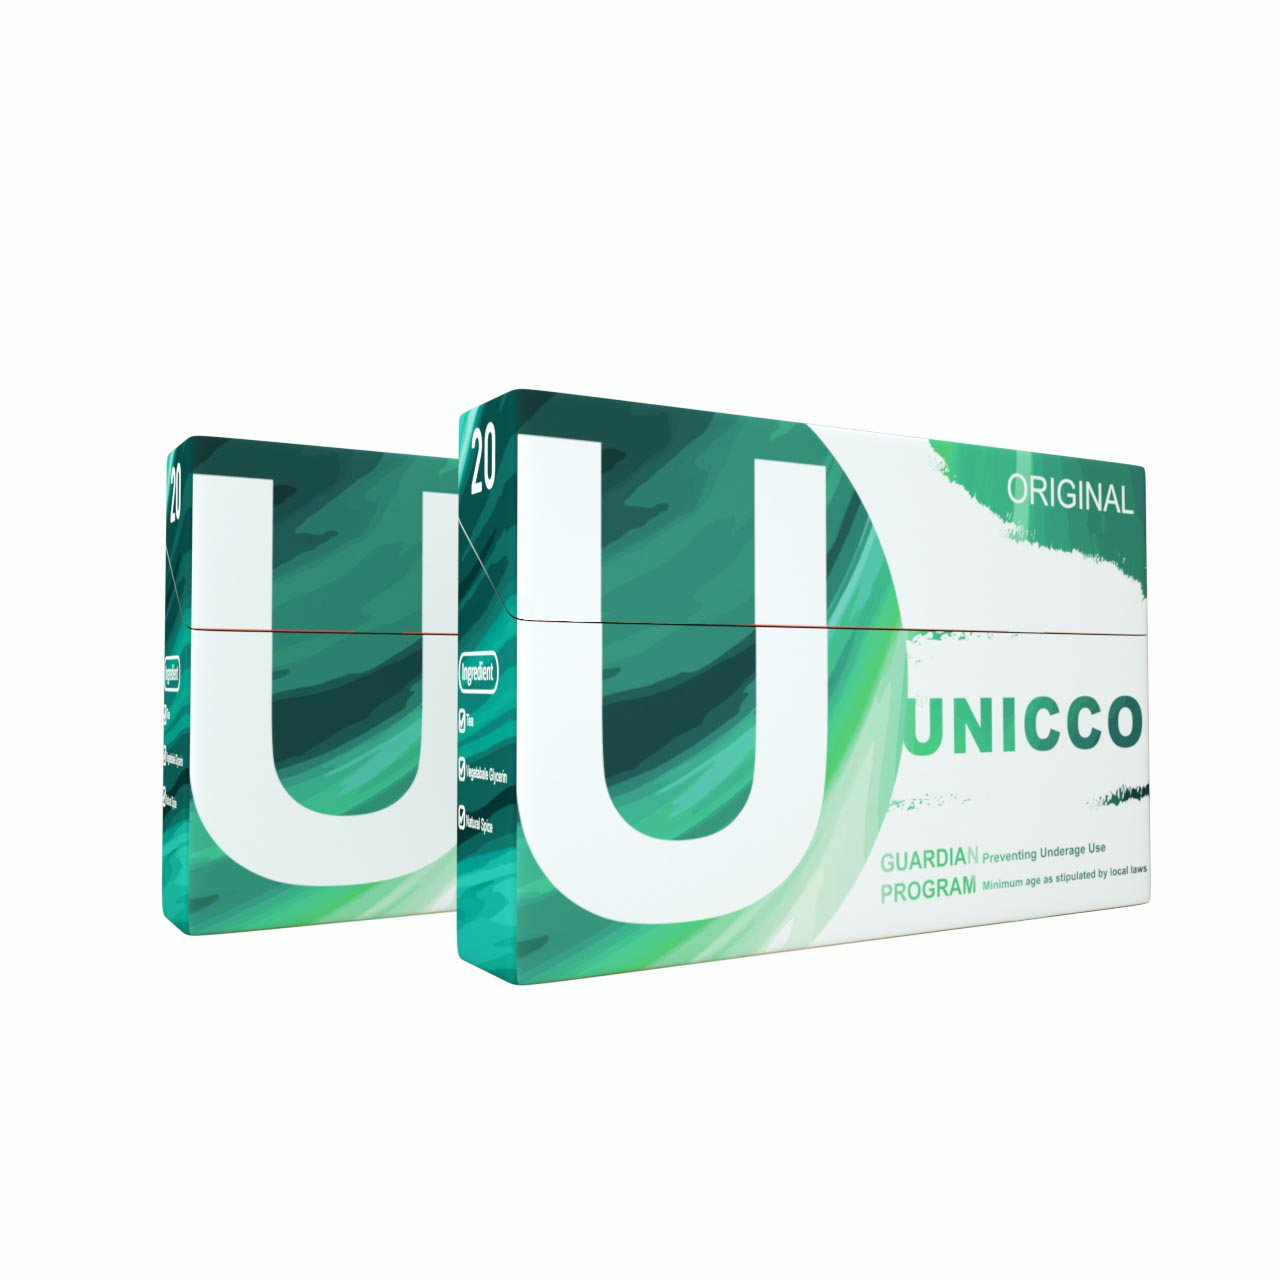 UNICCO-HEAT NOT BURN-HERBAL STICKS-TOBACCO LIKE FLAVOR-ORIGINAL